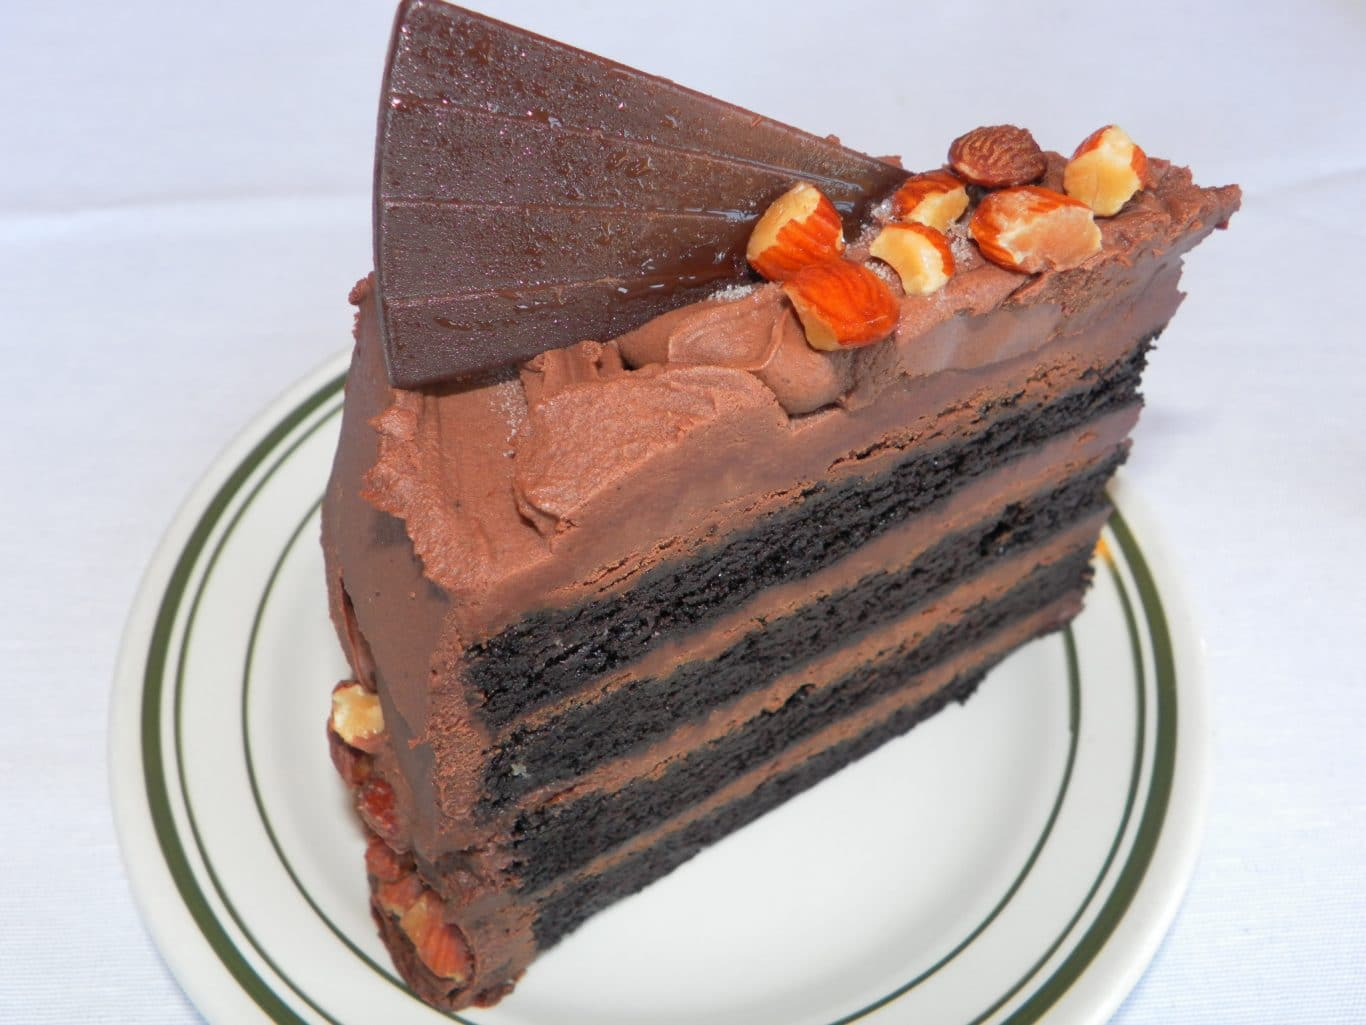 Grand Chocolate Finale Cake